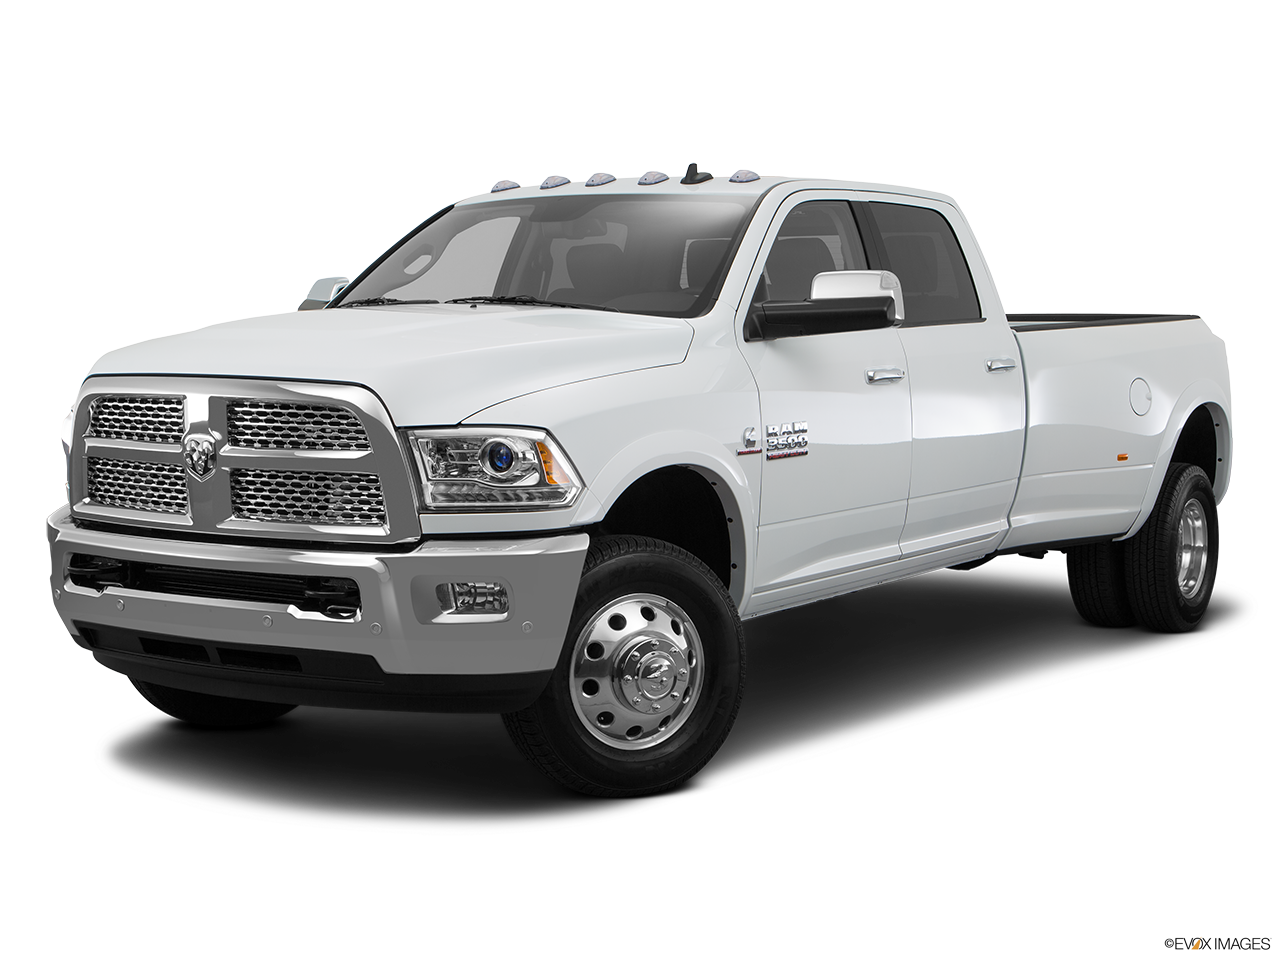 Test Drive A 2016 RAM 3500 DRW at Cherry Hill Dodge Chrysler Jeep RAM in Cherry Hill